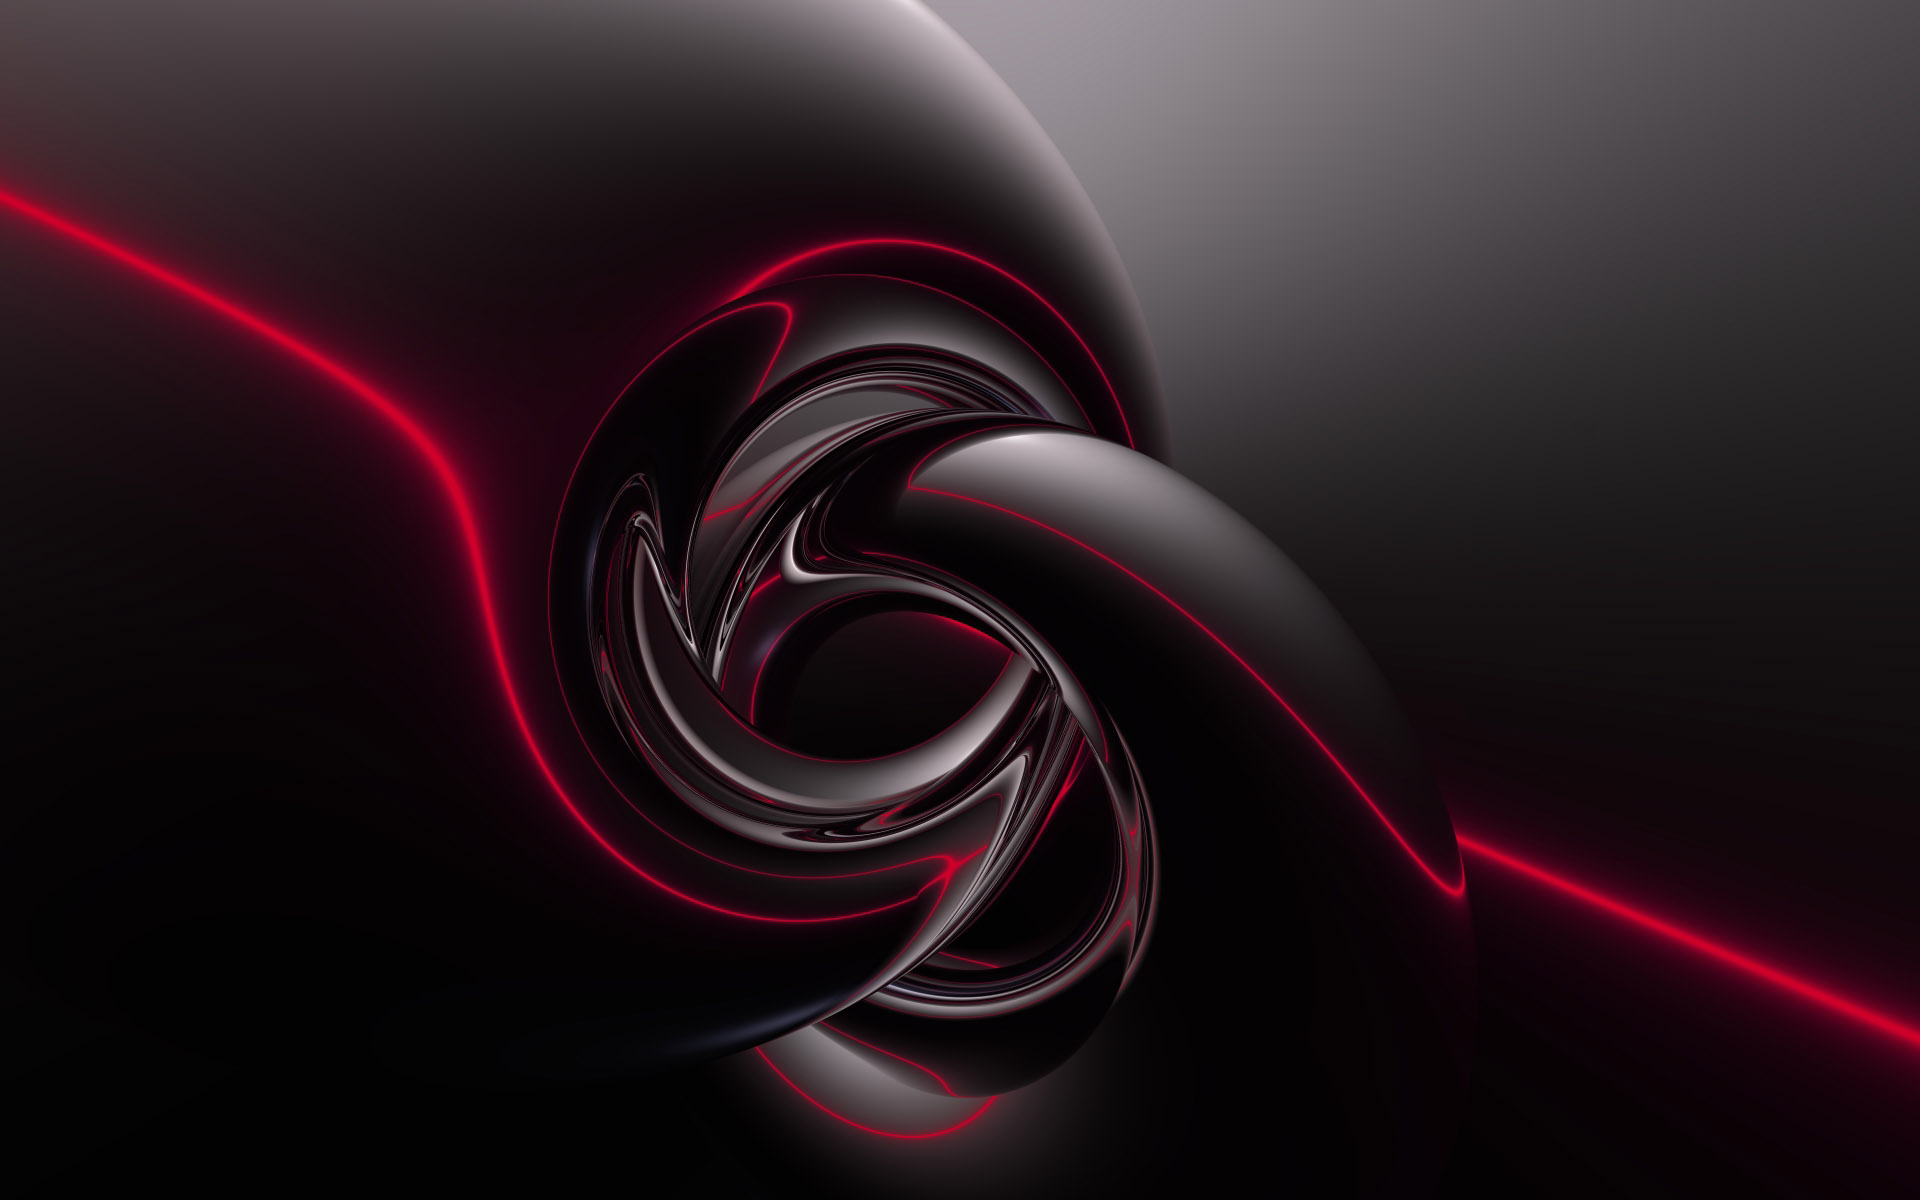 Dark Red And Black Abstract Hd Wallpaper Background Image